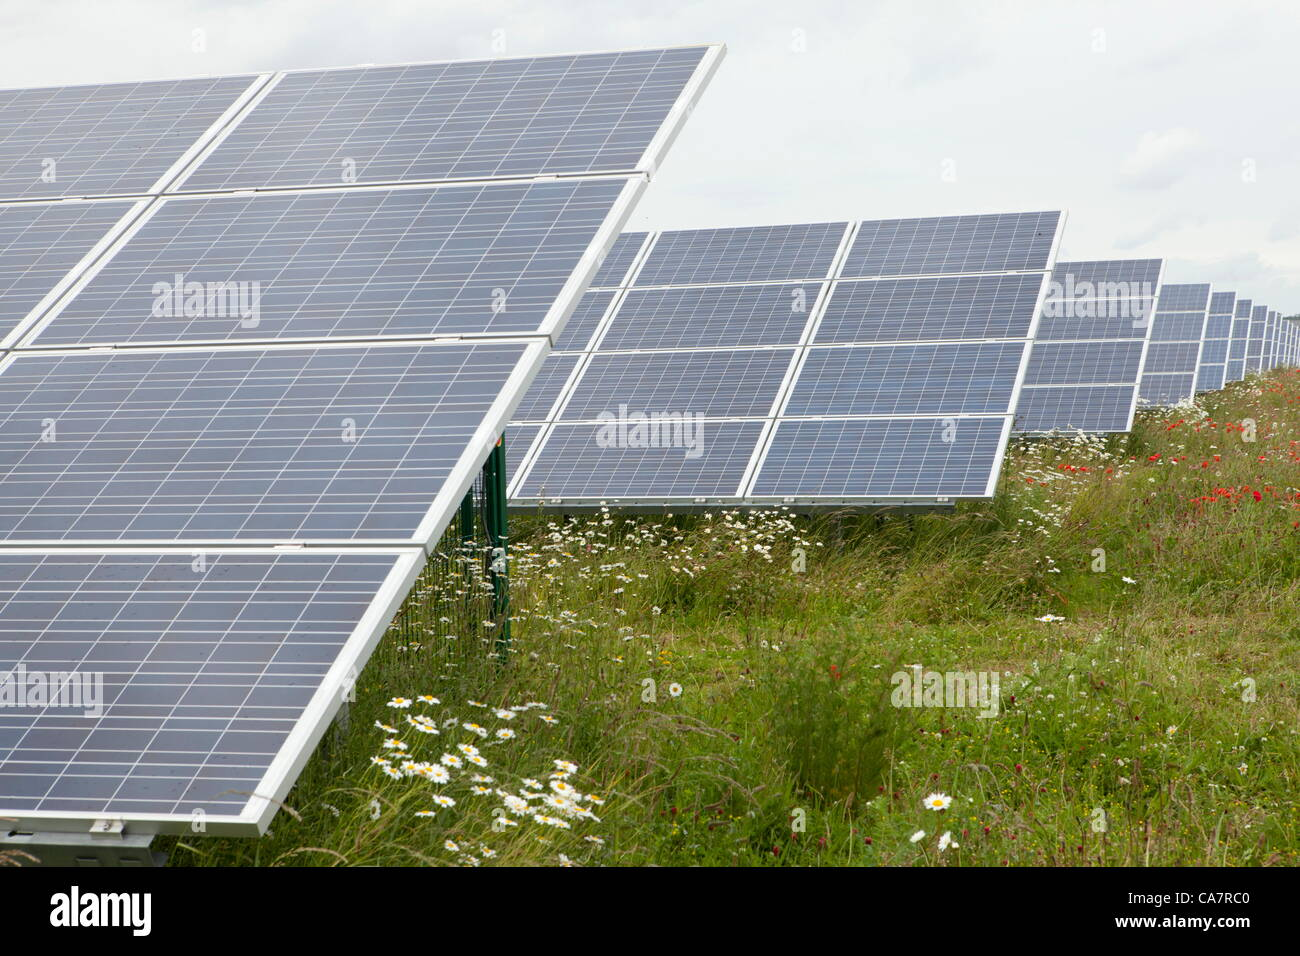 Westmill. Watchfield nr Swindon, UK. Saturday 23rd June 2012. Westmill energy farm on the day of its share offer - Stock Image